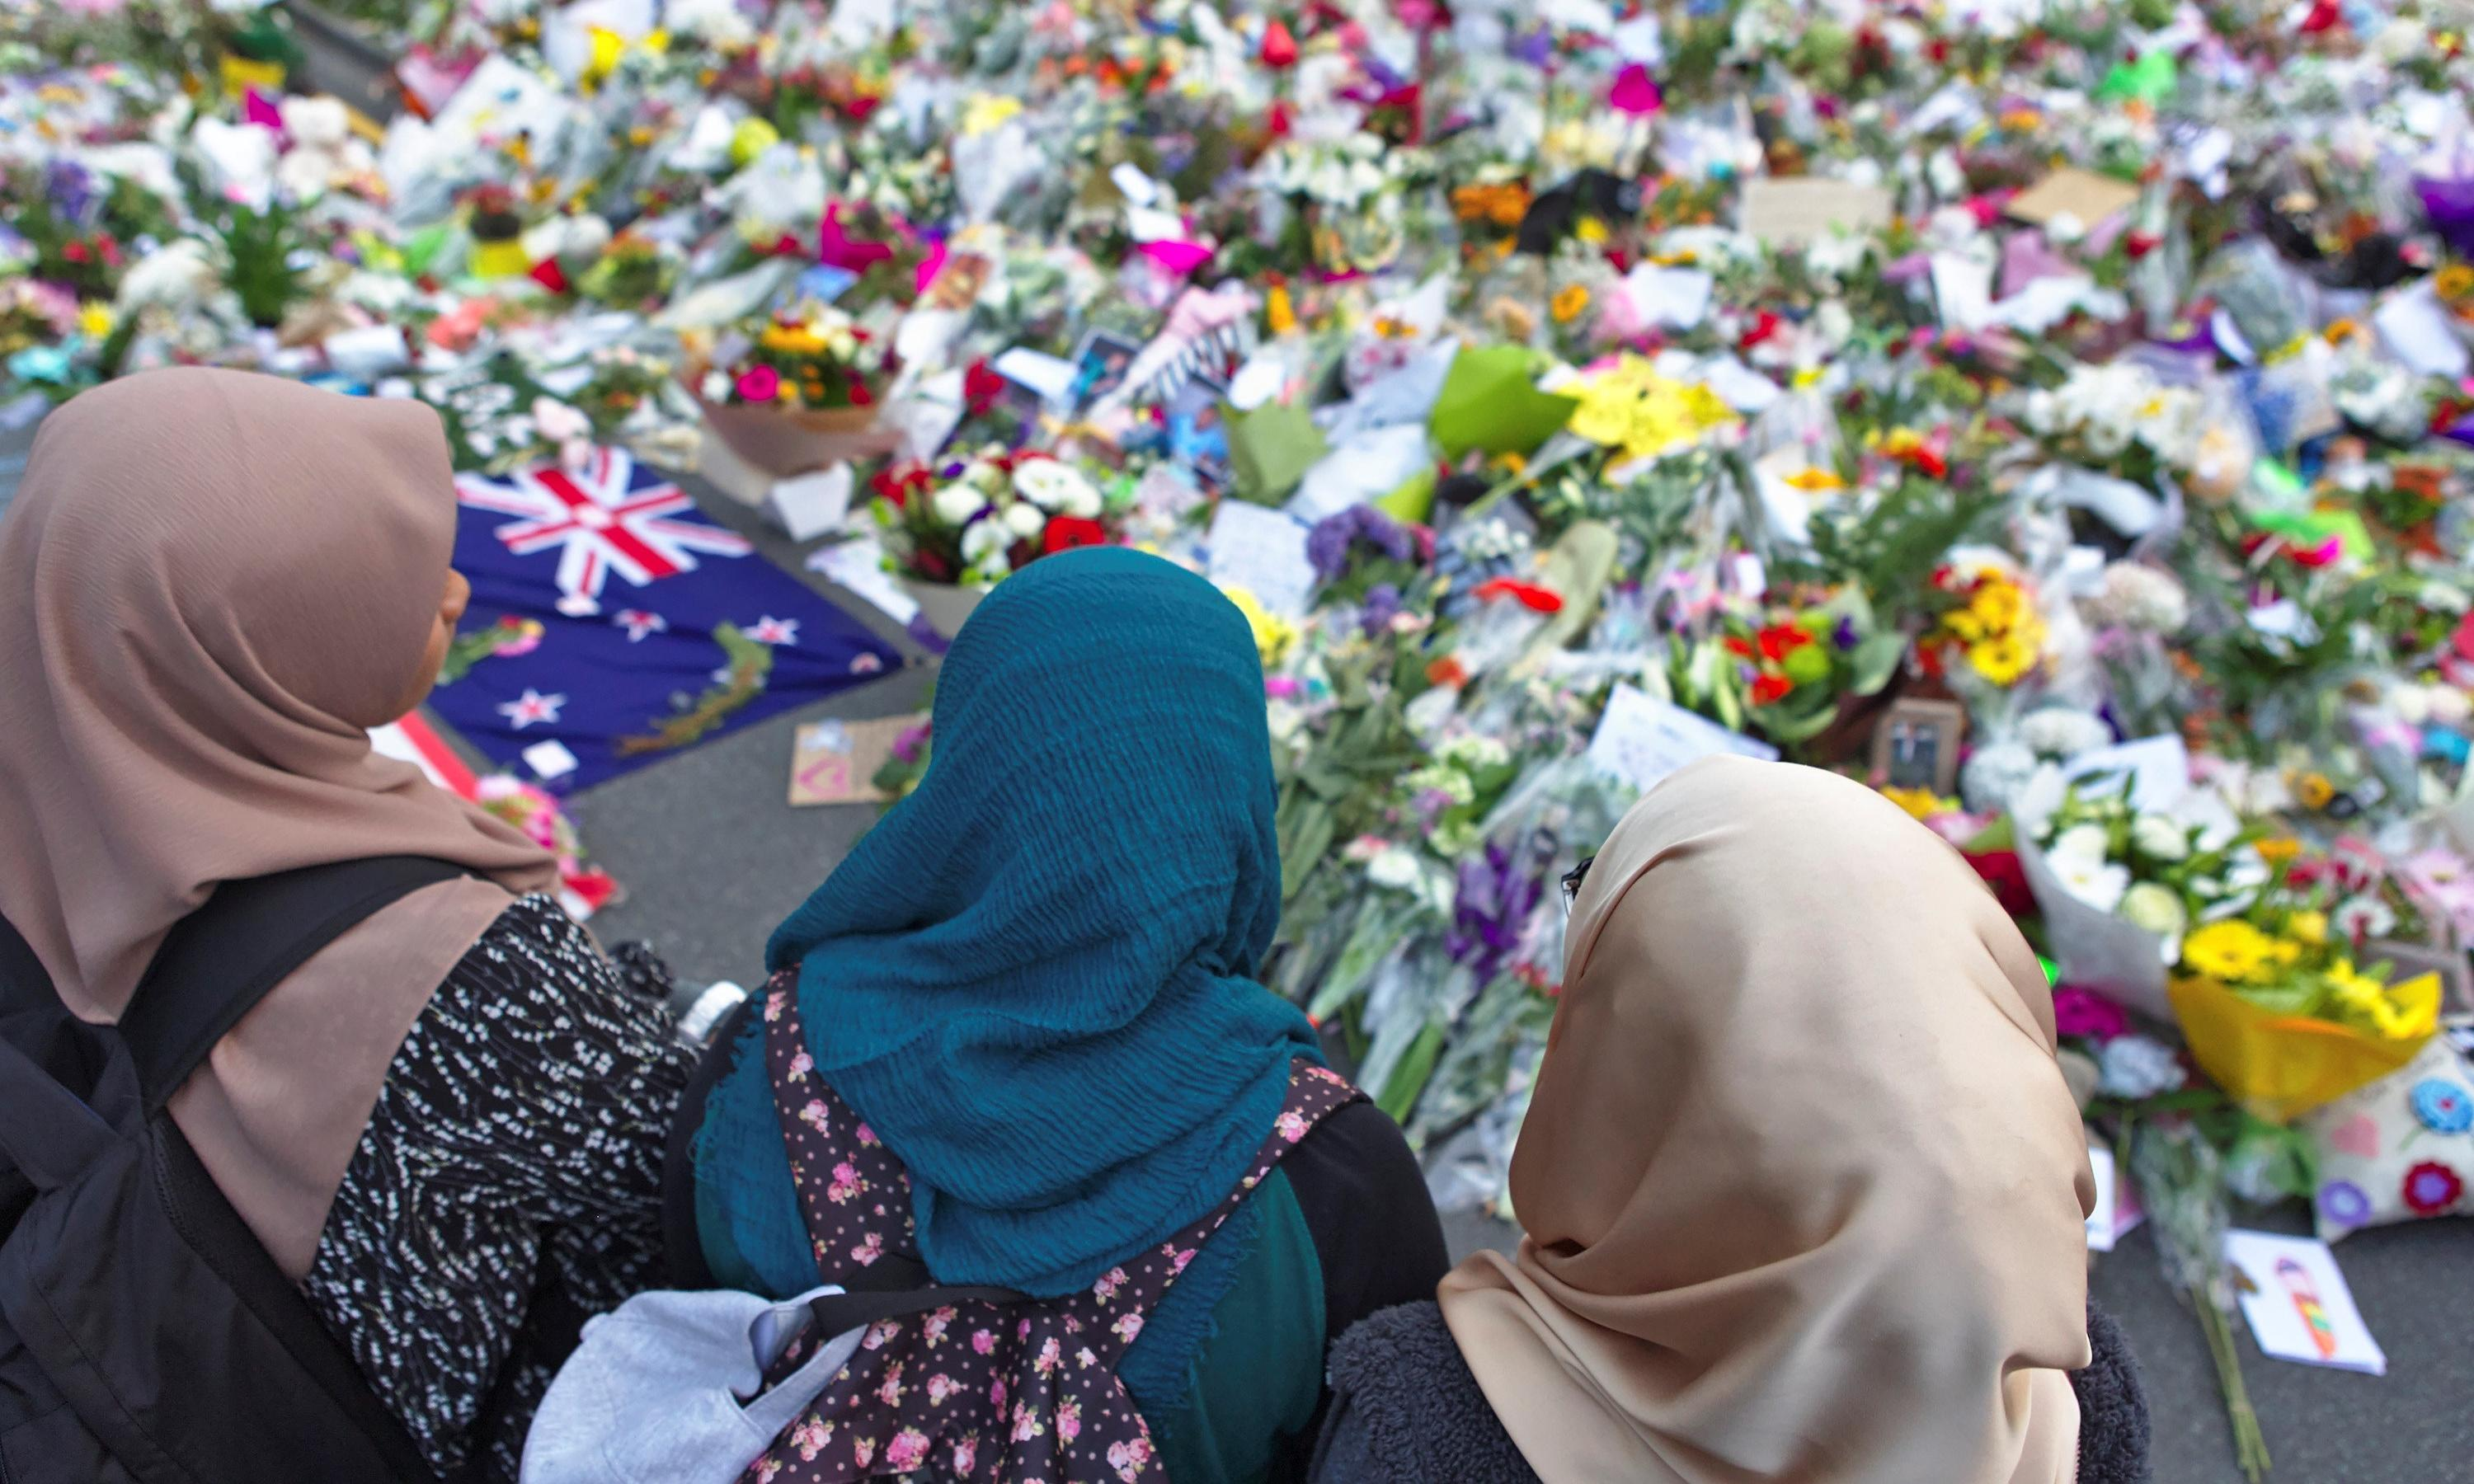 Ardern is right not to name the Christchurch suspect. What about everyone else?